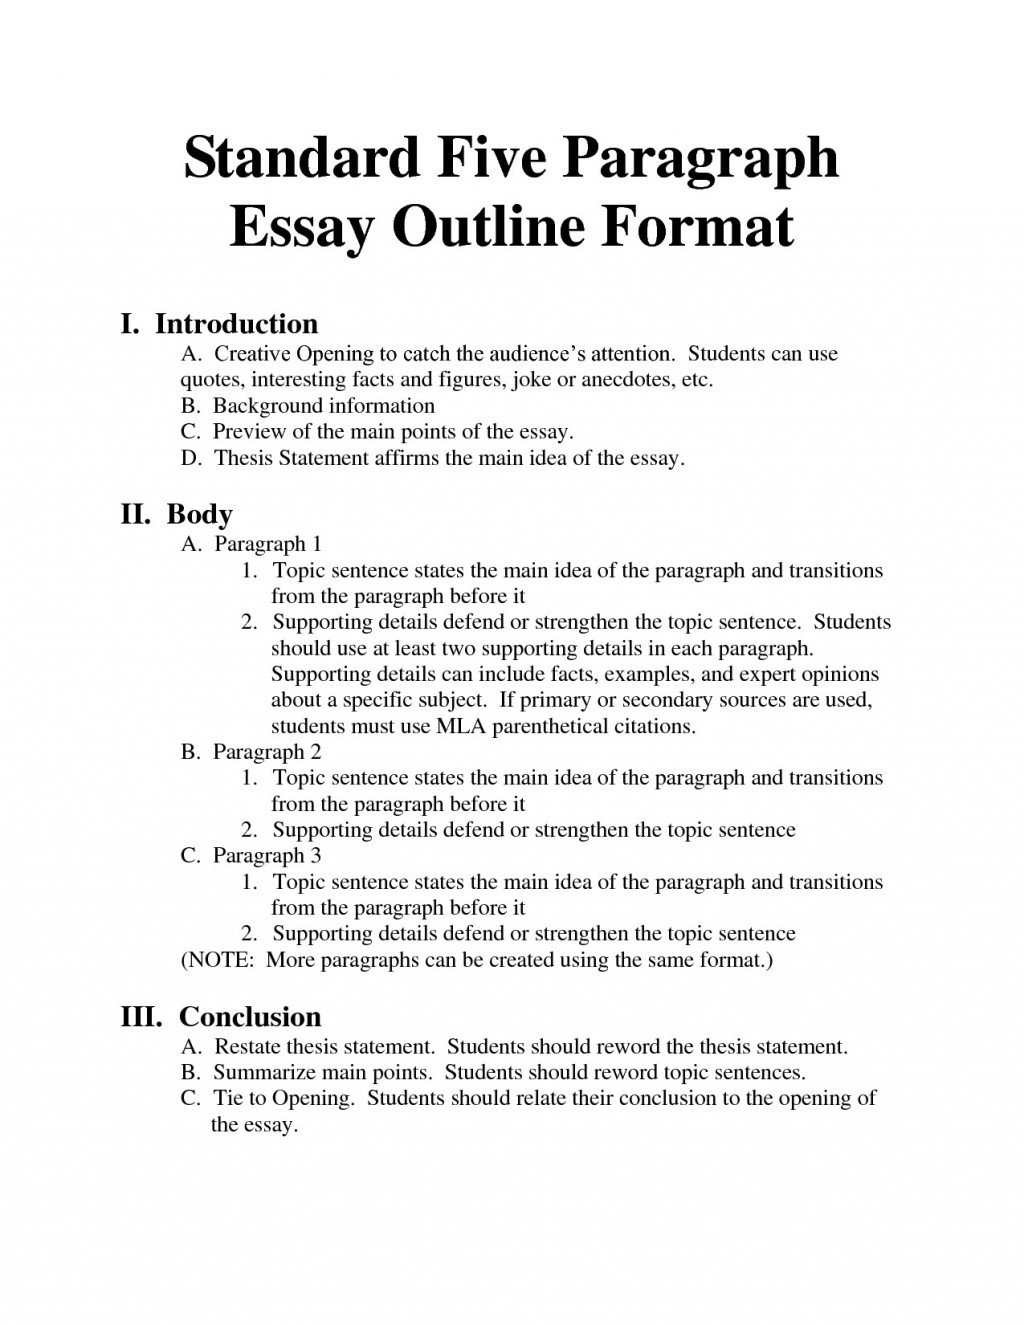 006 Proper Essay Format For Outline New Standard Bing Essays Correct Homescho Unique Pdf Paper College Argumentative Large